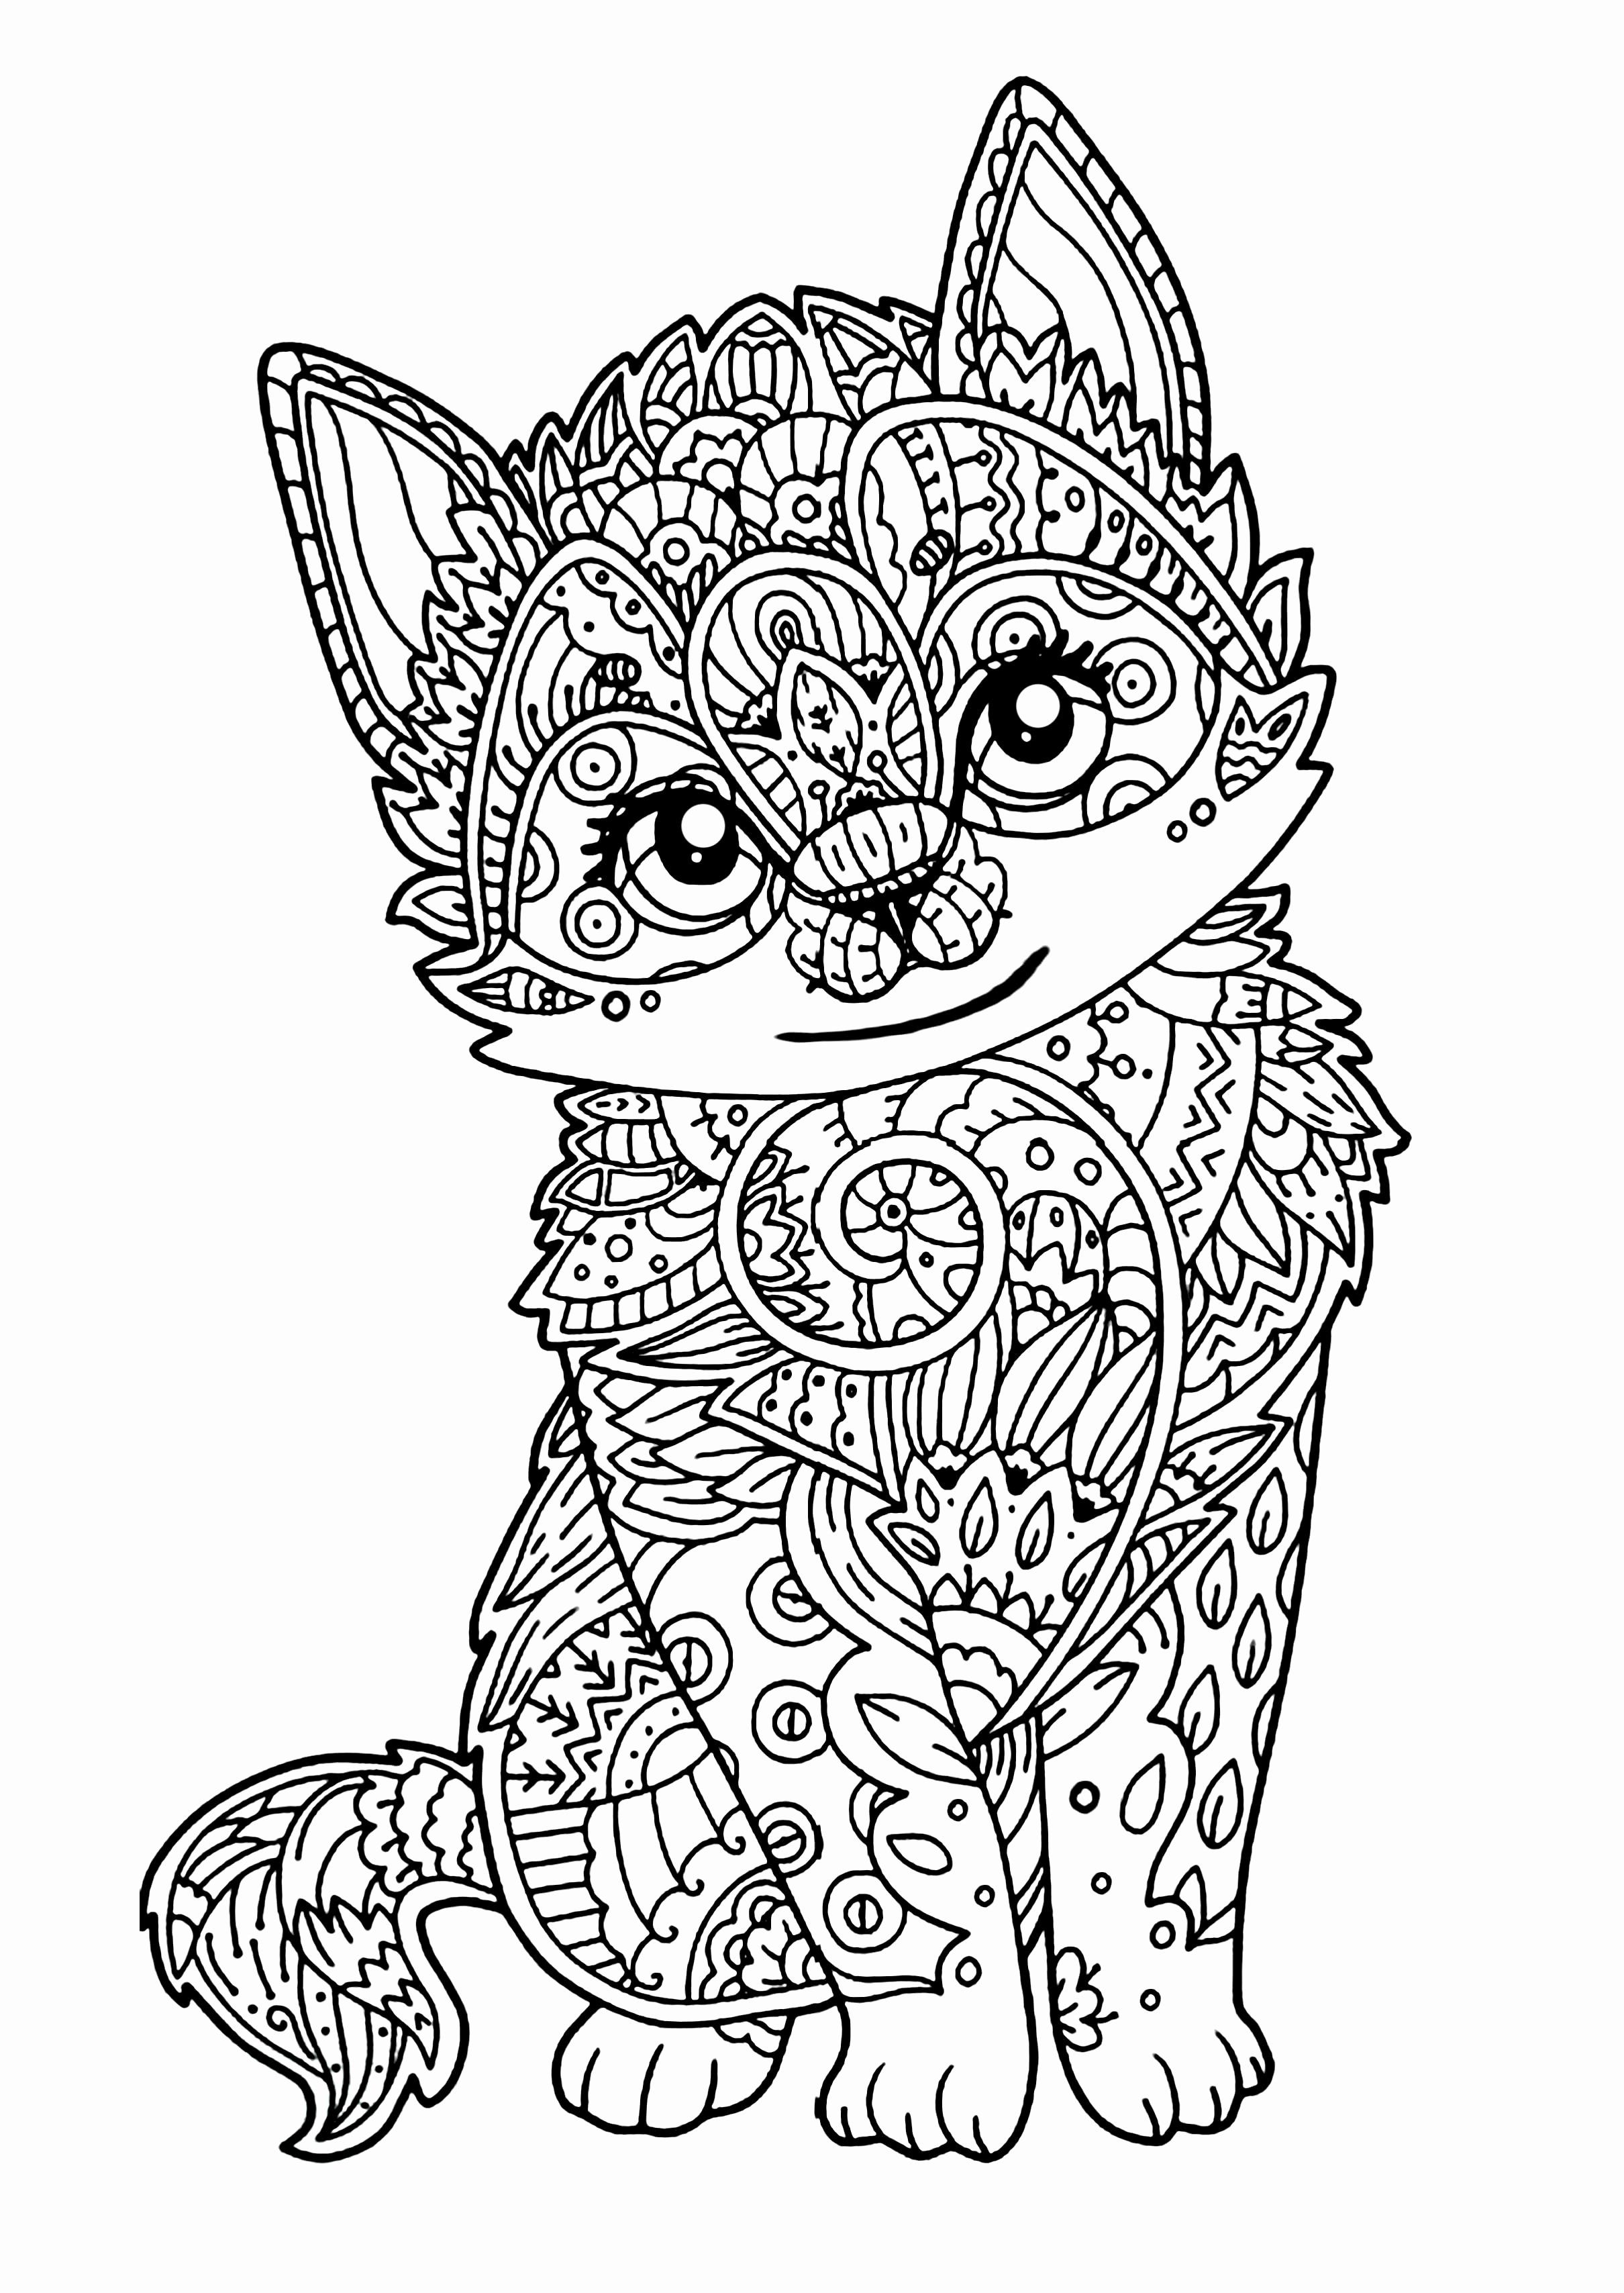 Cat Coloring Page Printable In 2020 With Images Cat Coloring